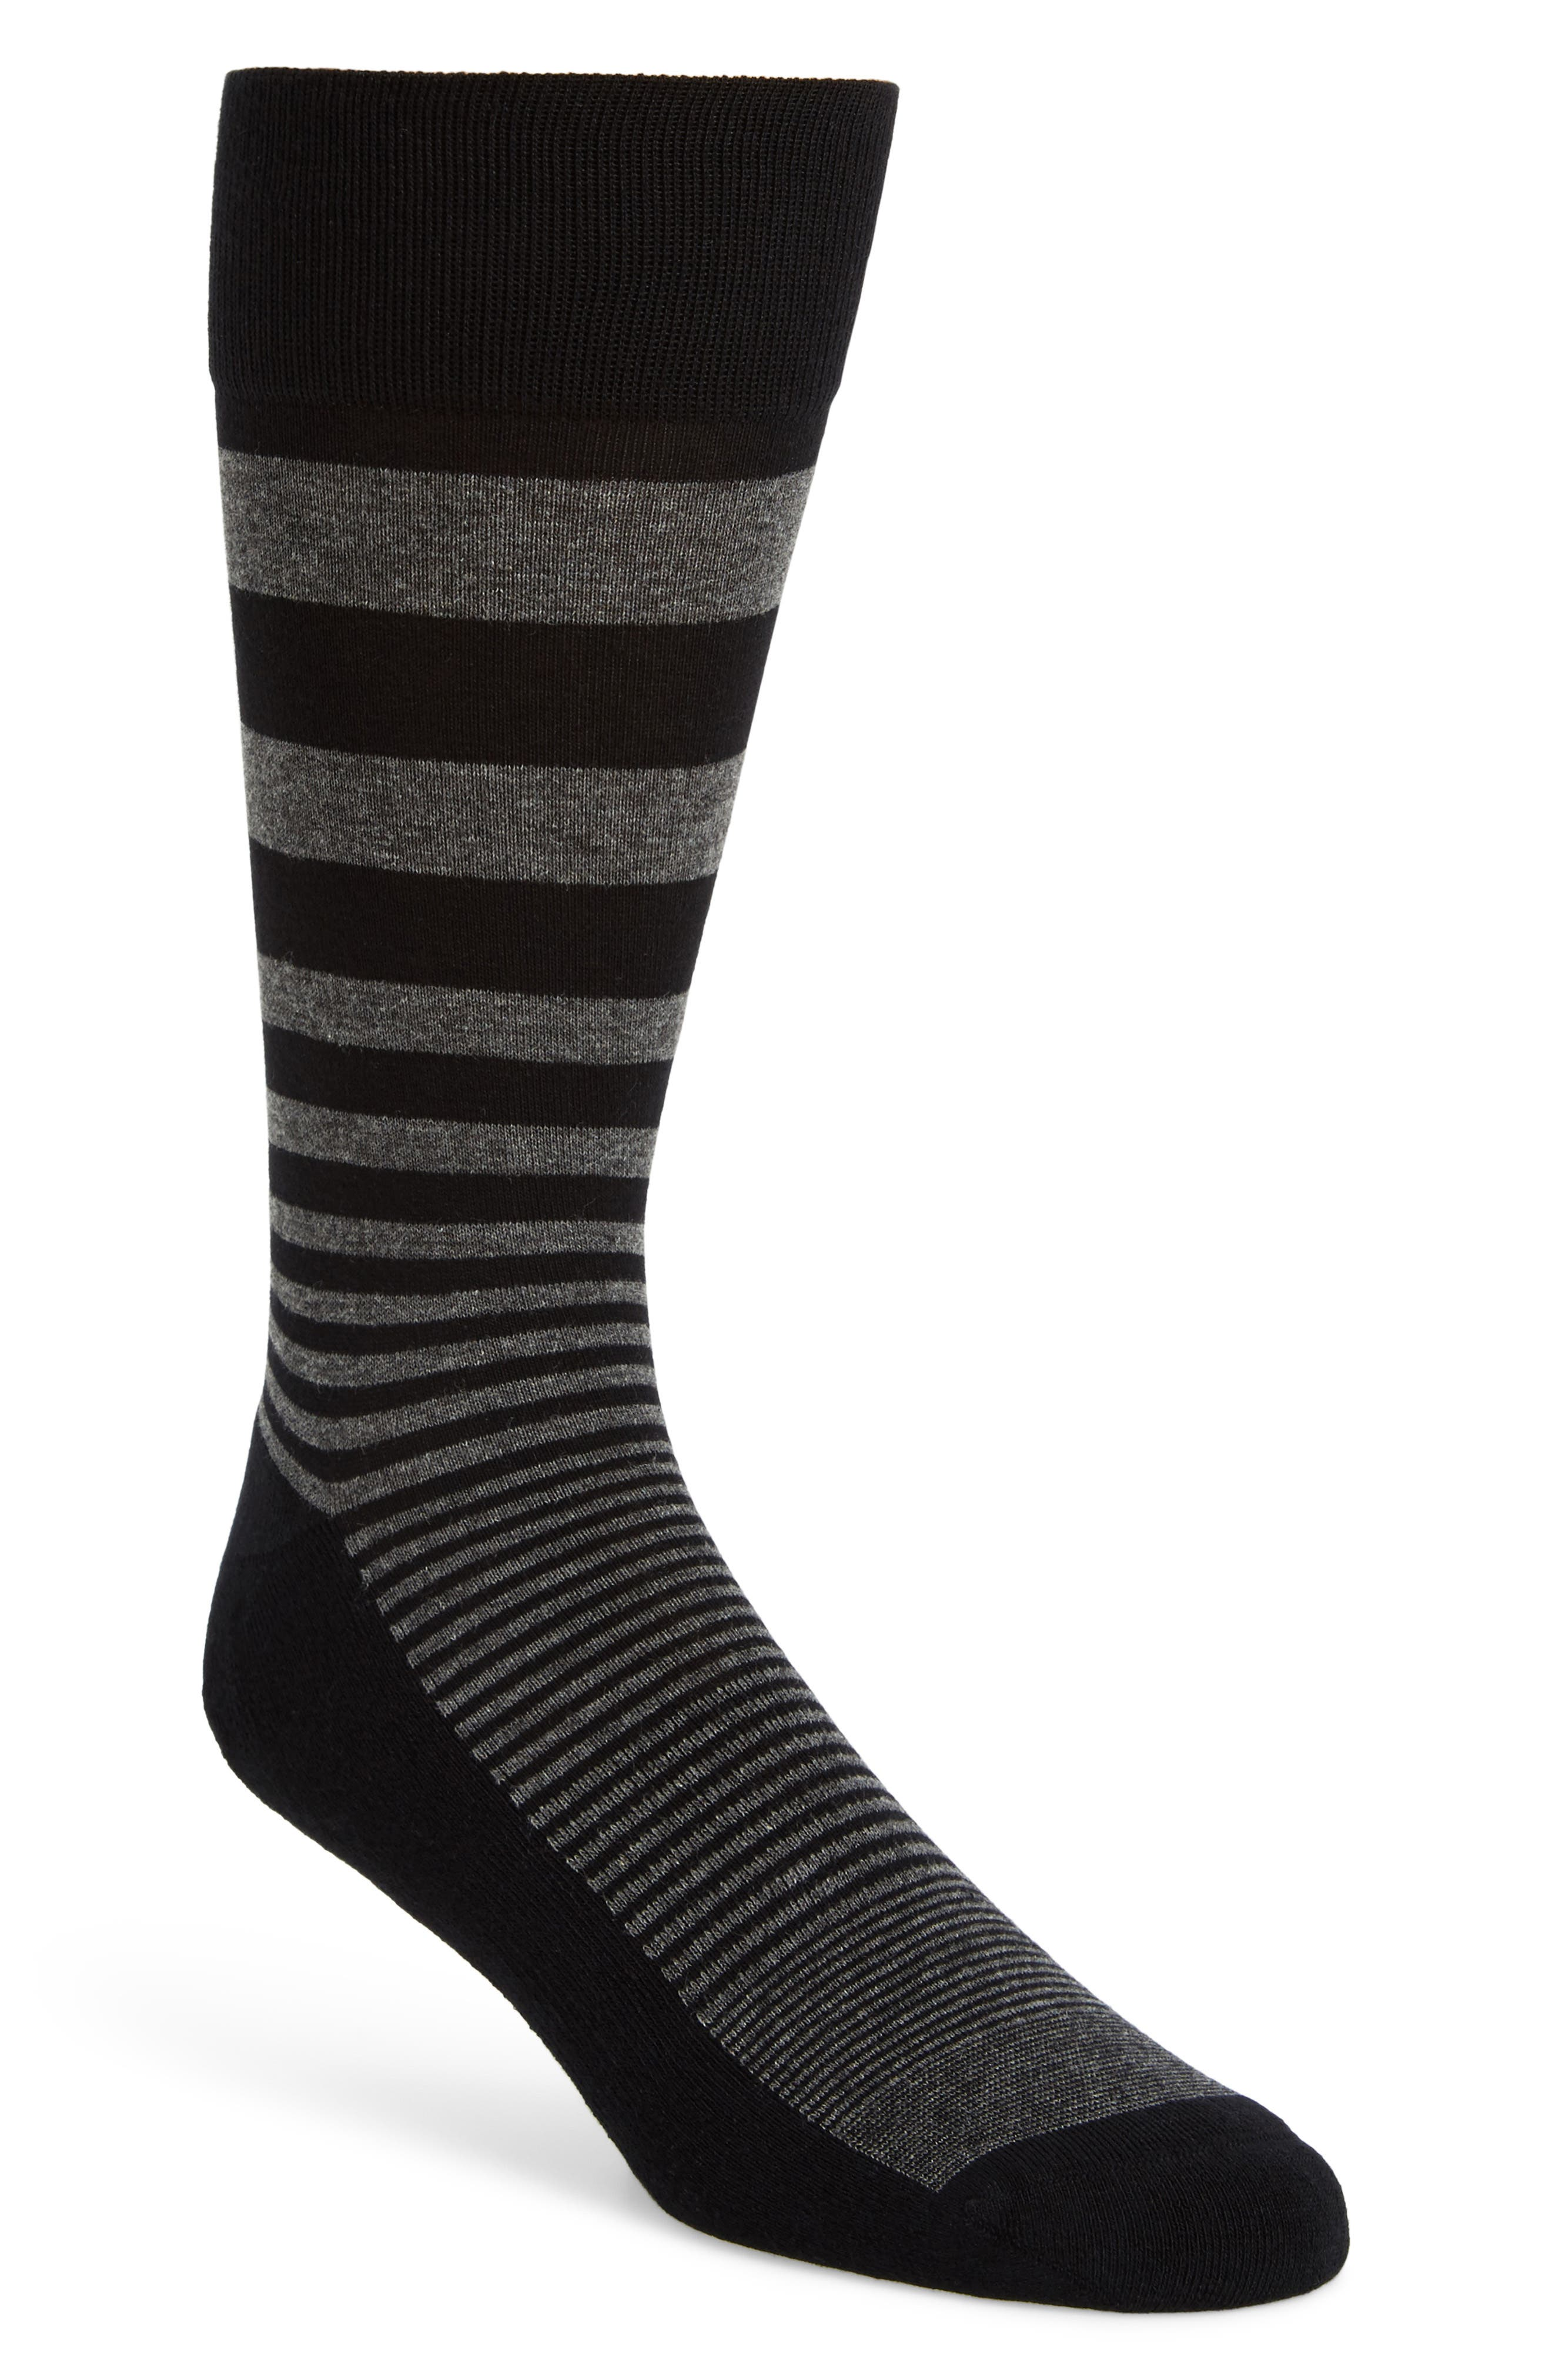 Alternate Image 1 Selected - Nordstrom Men's Shop Stripe Socks (3 for $30)